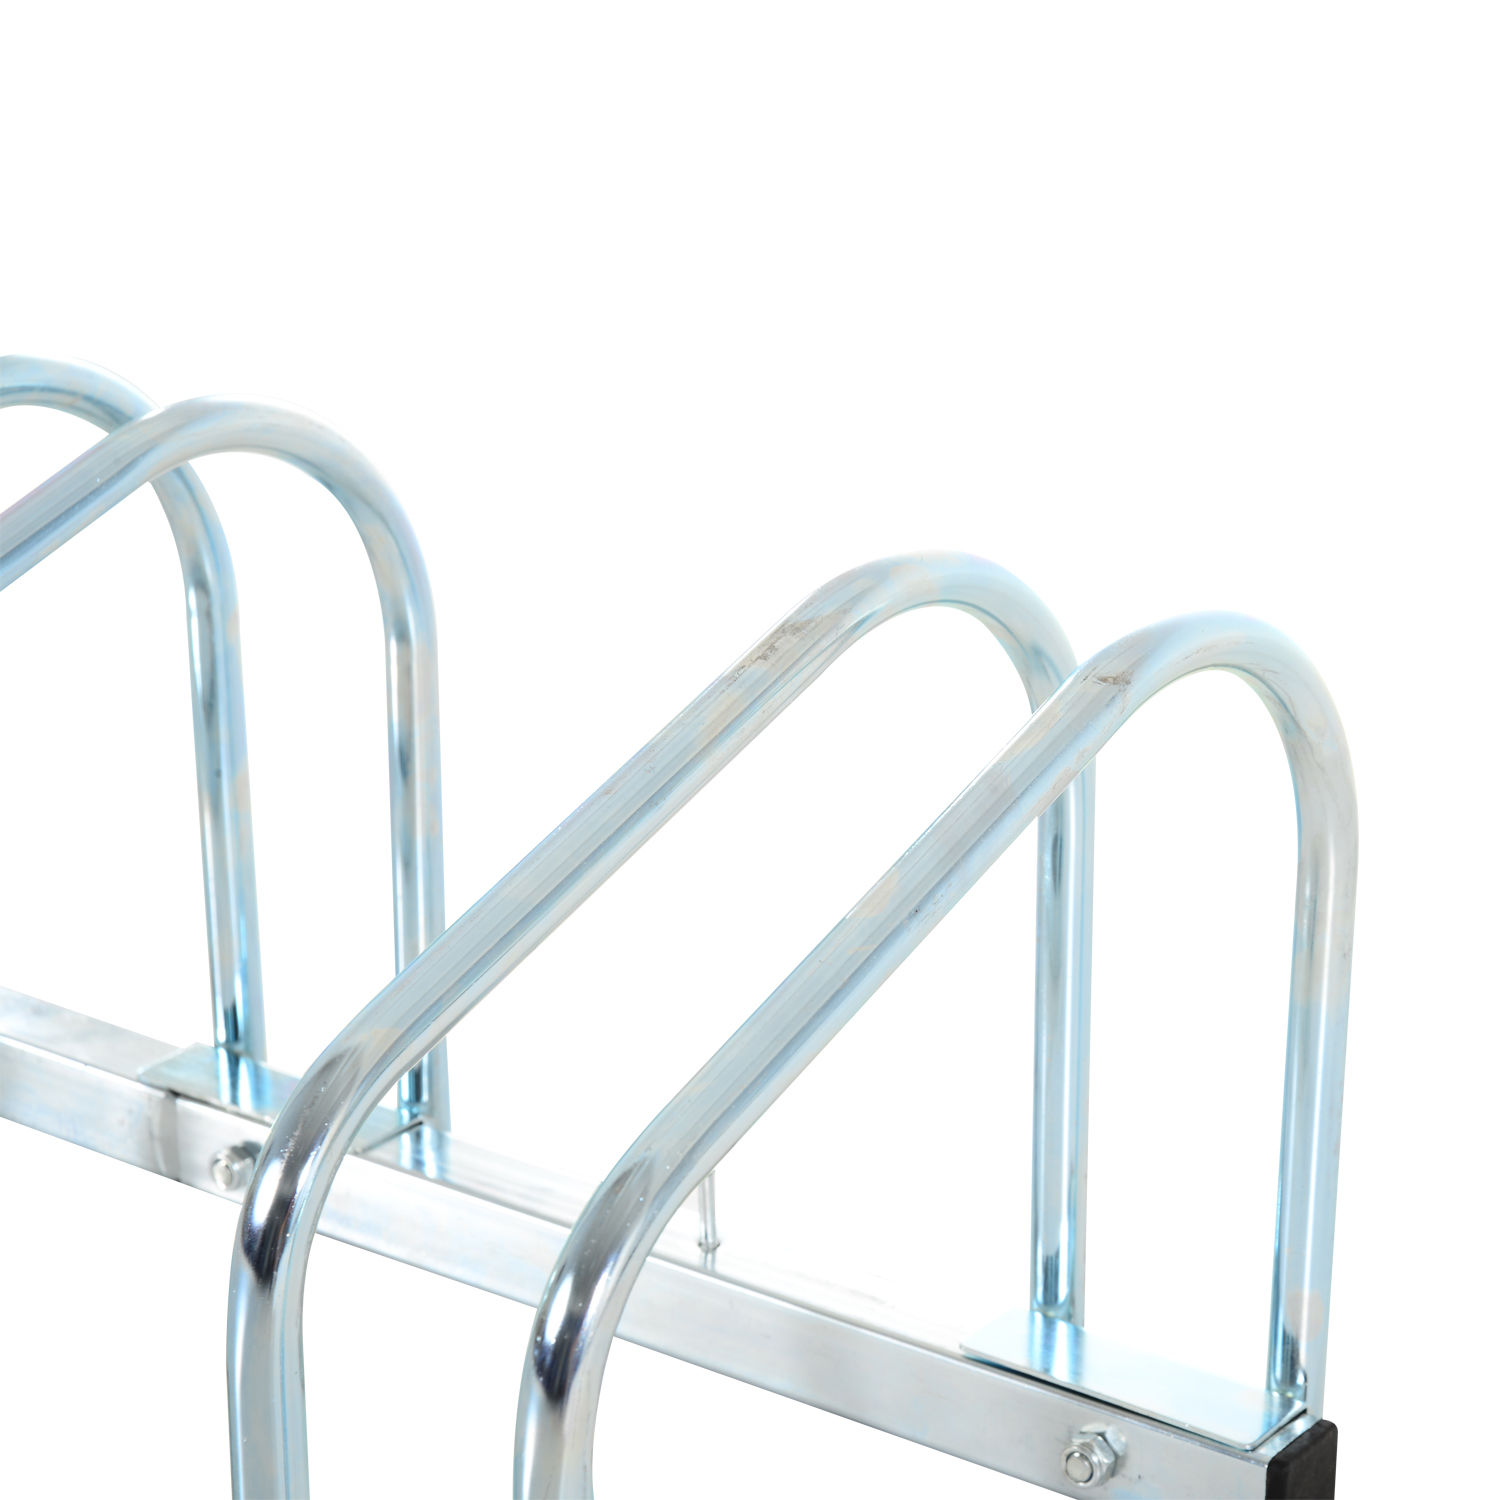 Bicycle-Bike-Parking-Cycle-Floor-Rack-Stand-Storage-Mount-Holder-Steel-Pipe miniatura 24